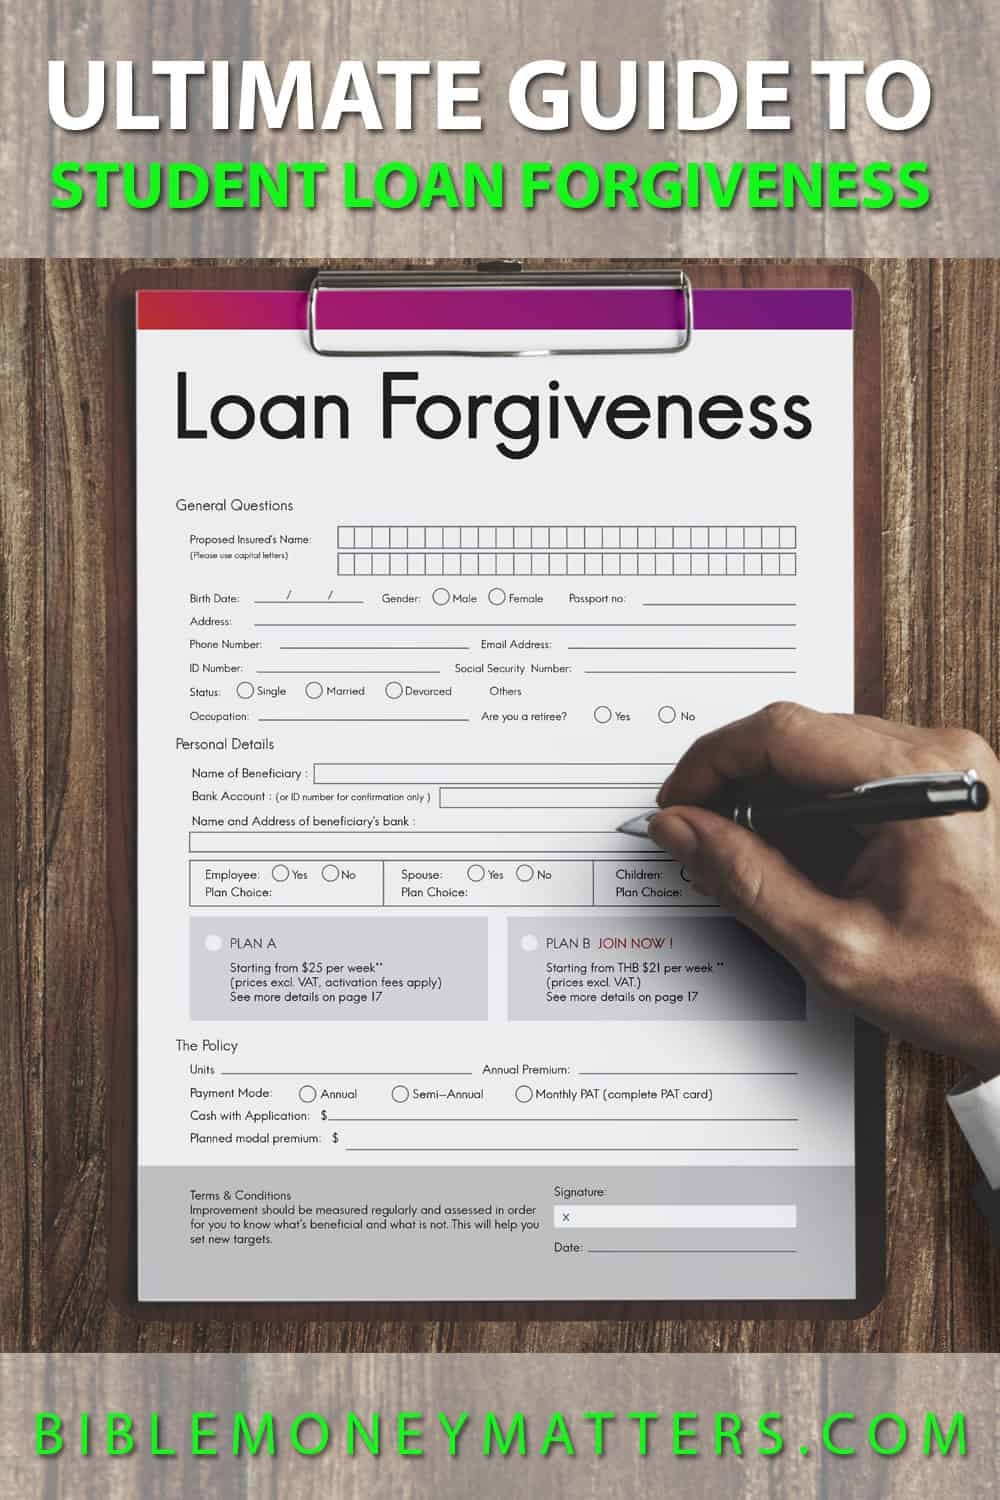 Ultimate Guide To Student Loan Forgiveness: Programs To Discharge Debt